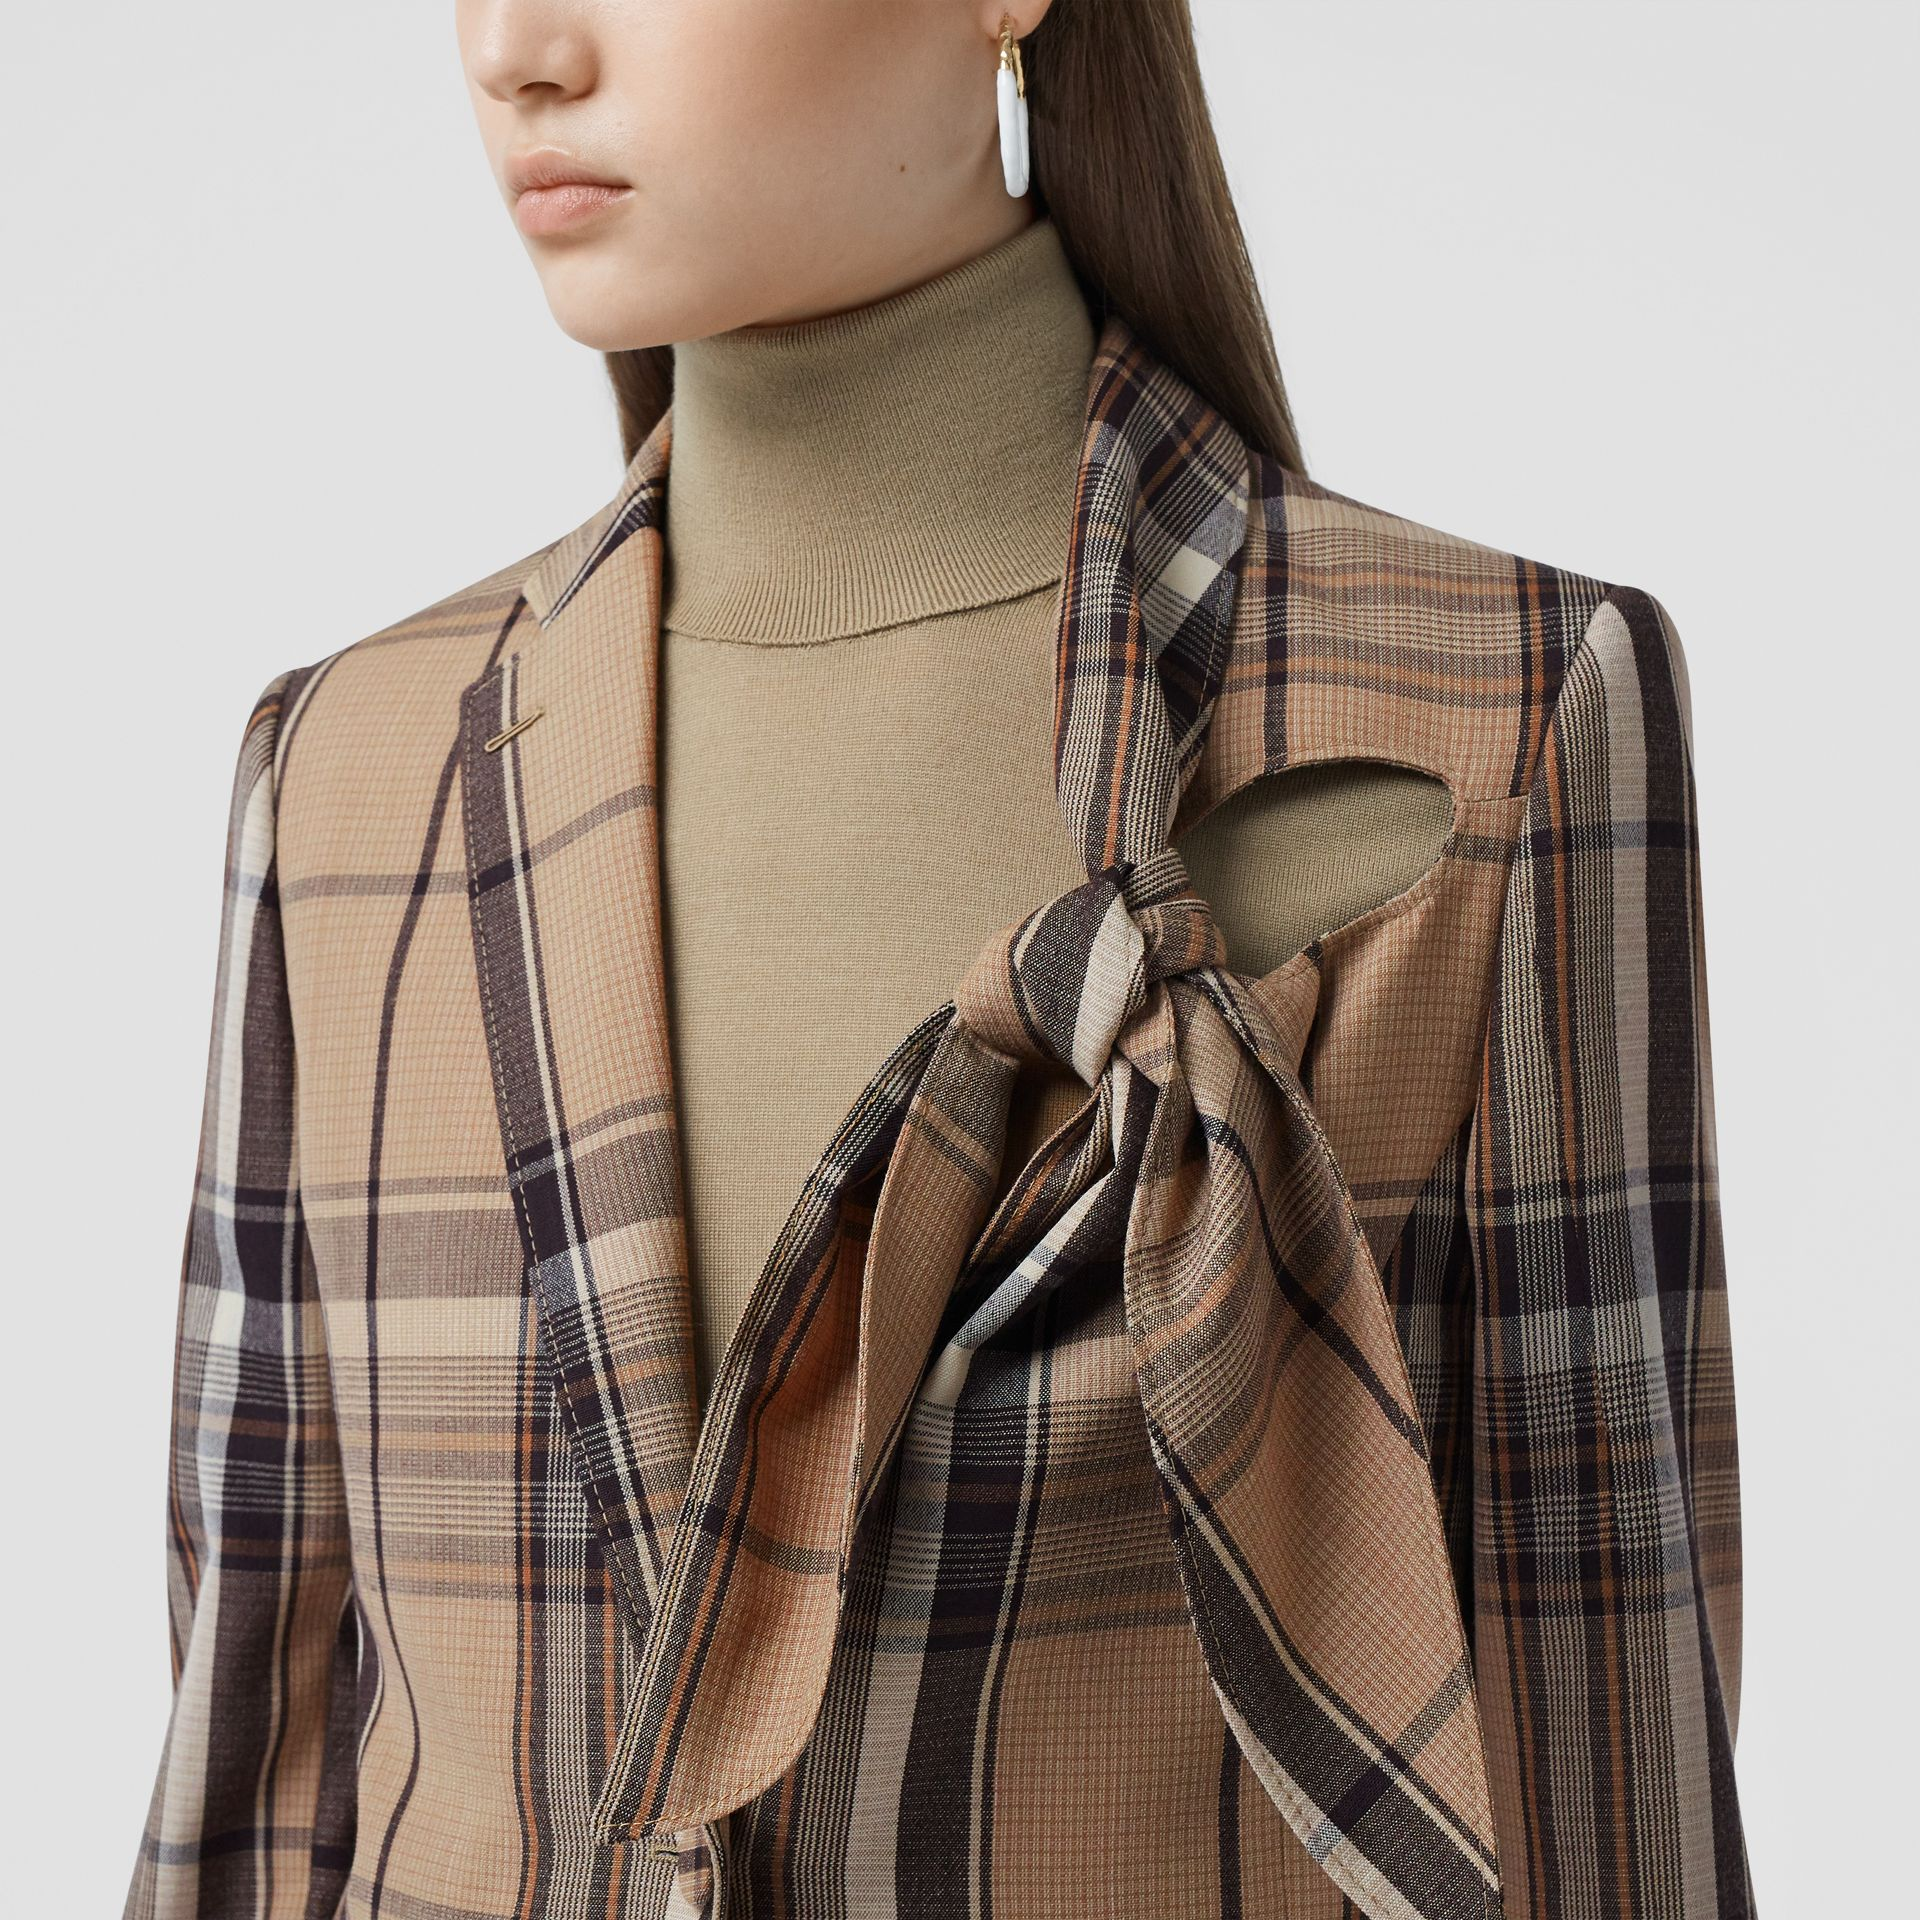 Knot Detail Check Wool Tailored Jacket - Women   Burberry United Kingdom - gallery image 1